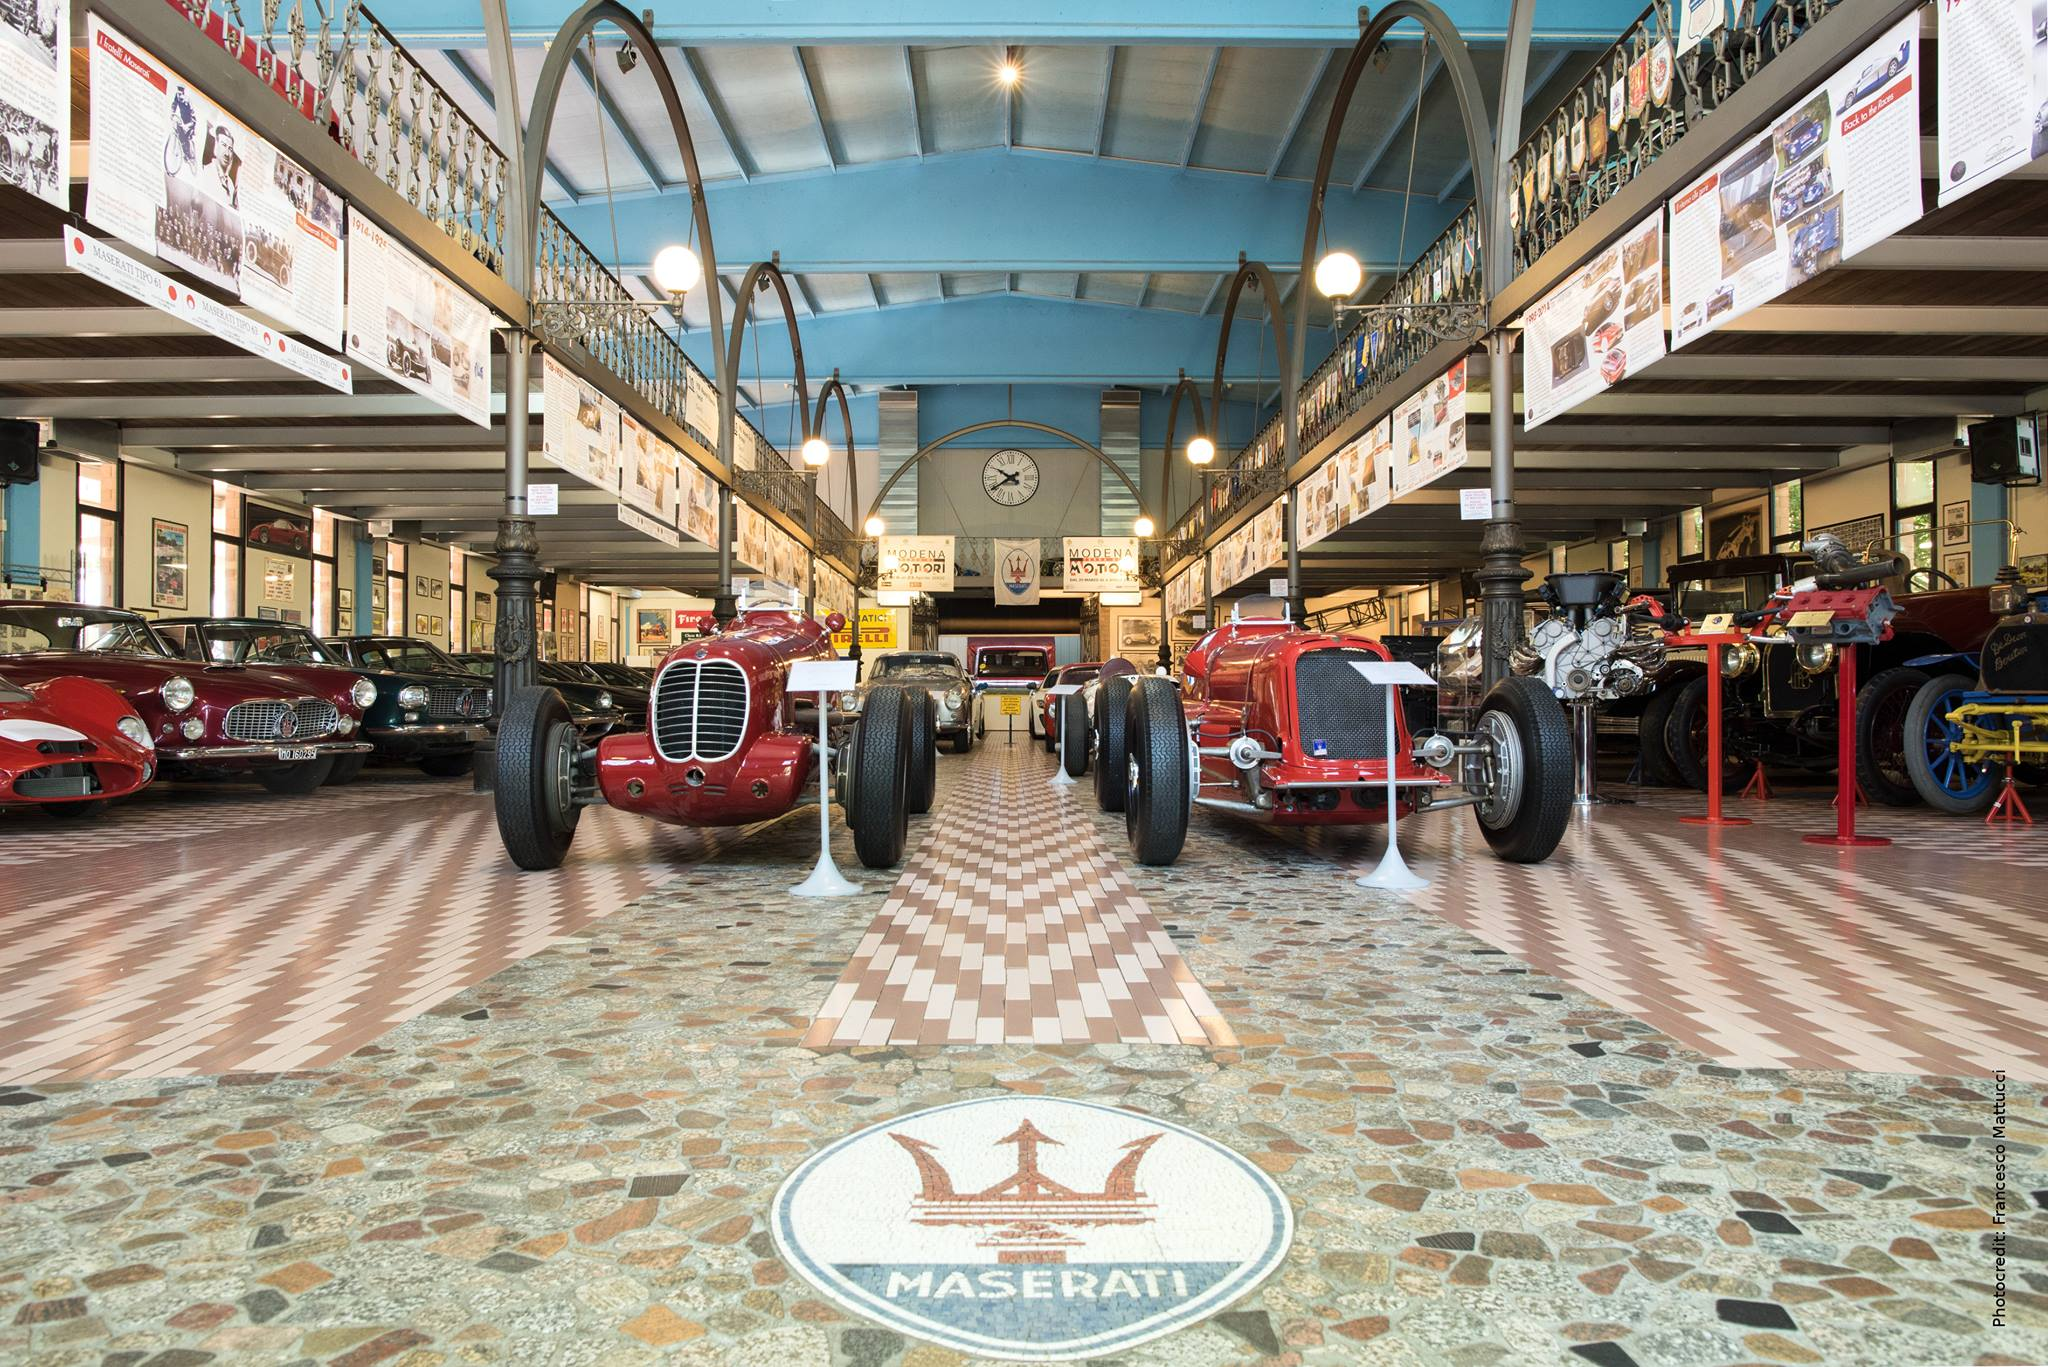 Discovering the best Italian car and motorcycle private collections